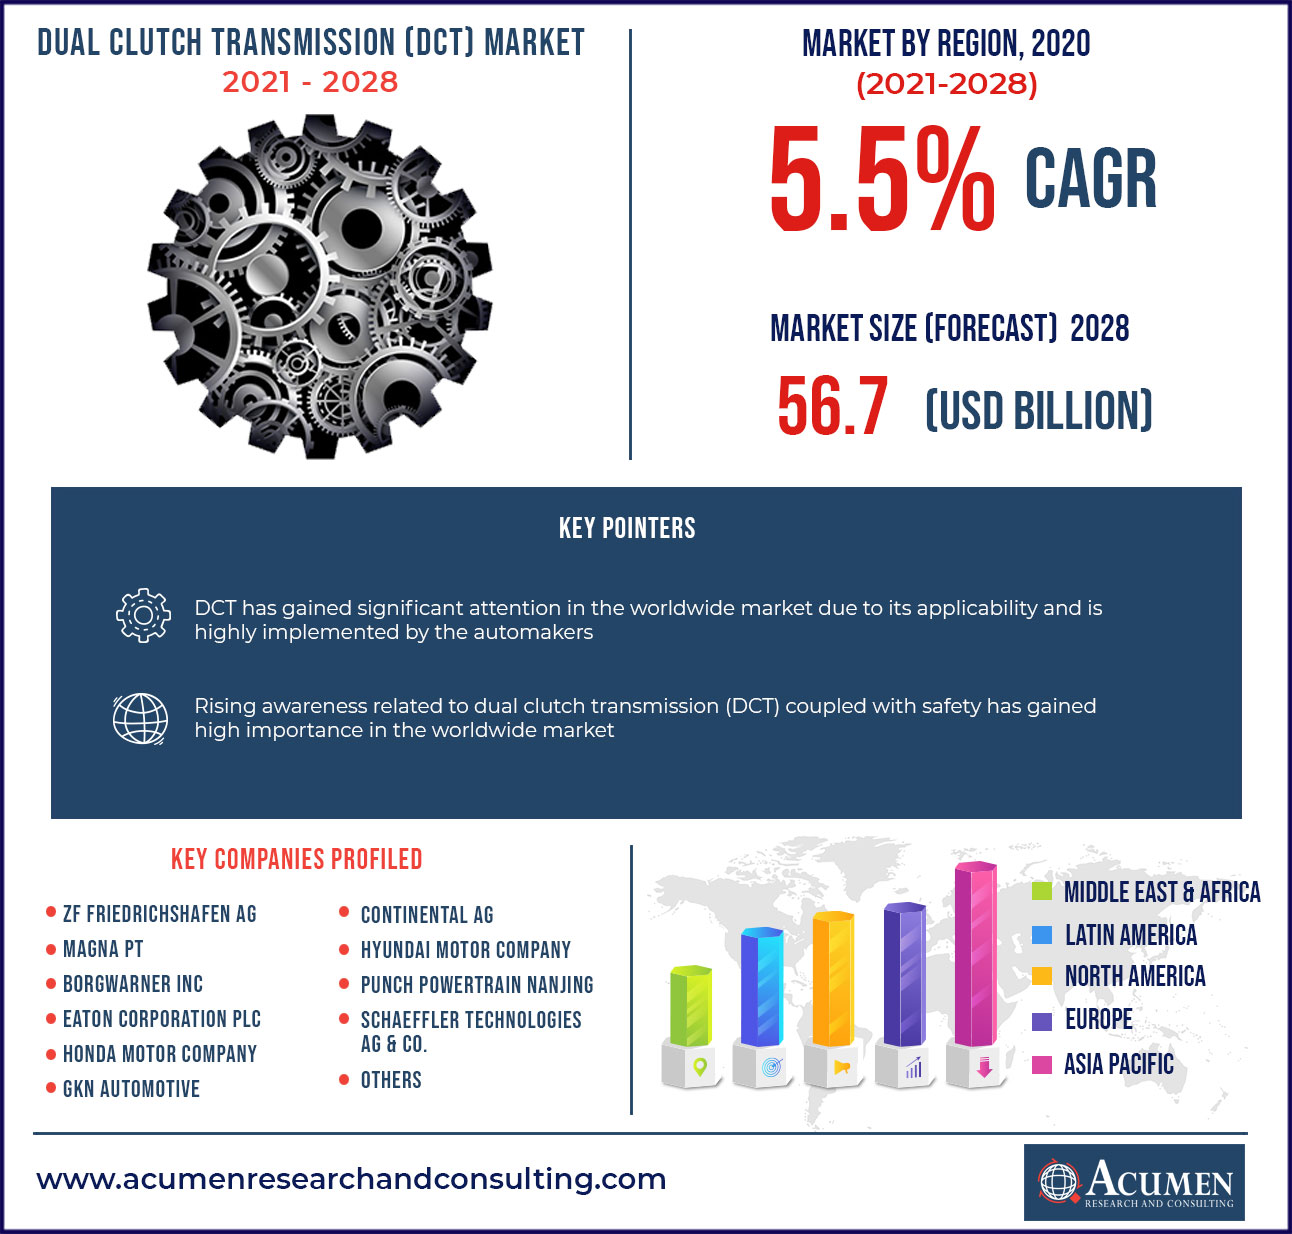 Dual Clutch Transmission Market - CAGR of around 5.5% from 2021 to 2028